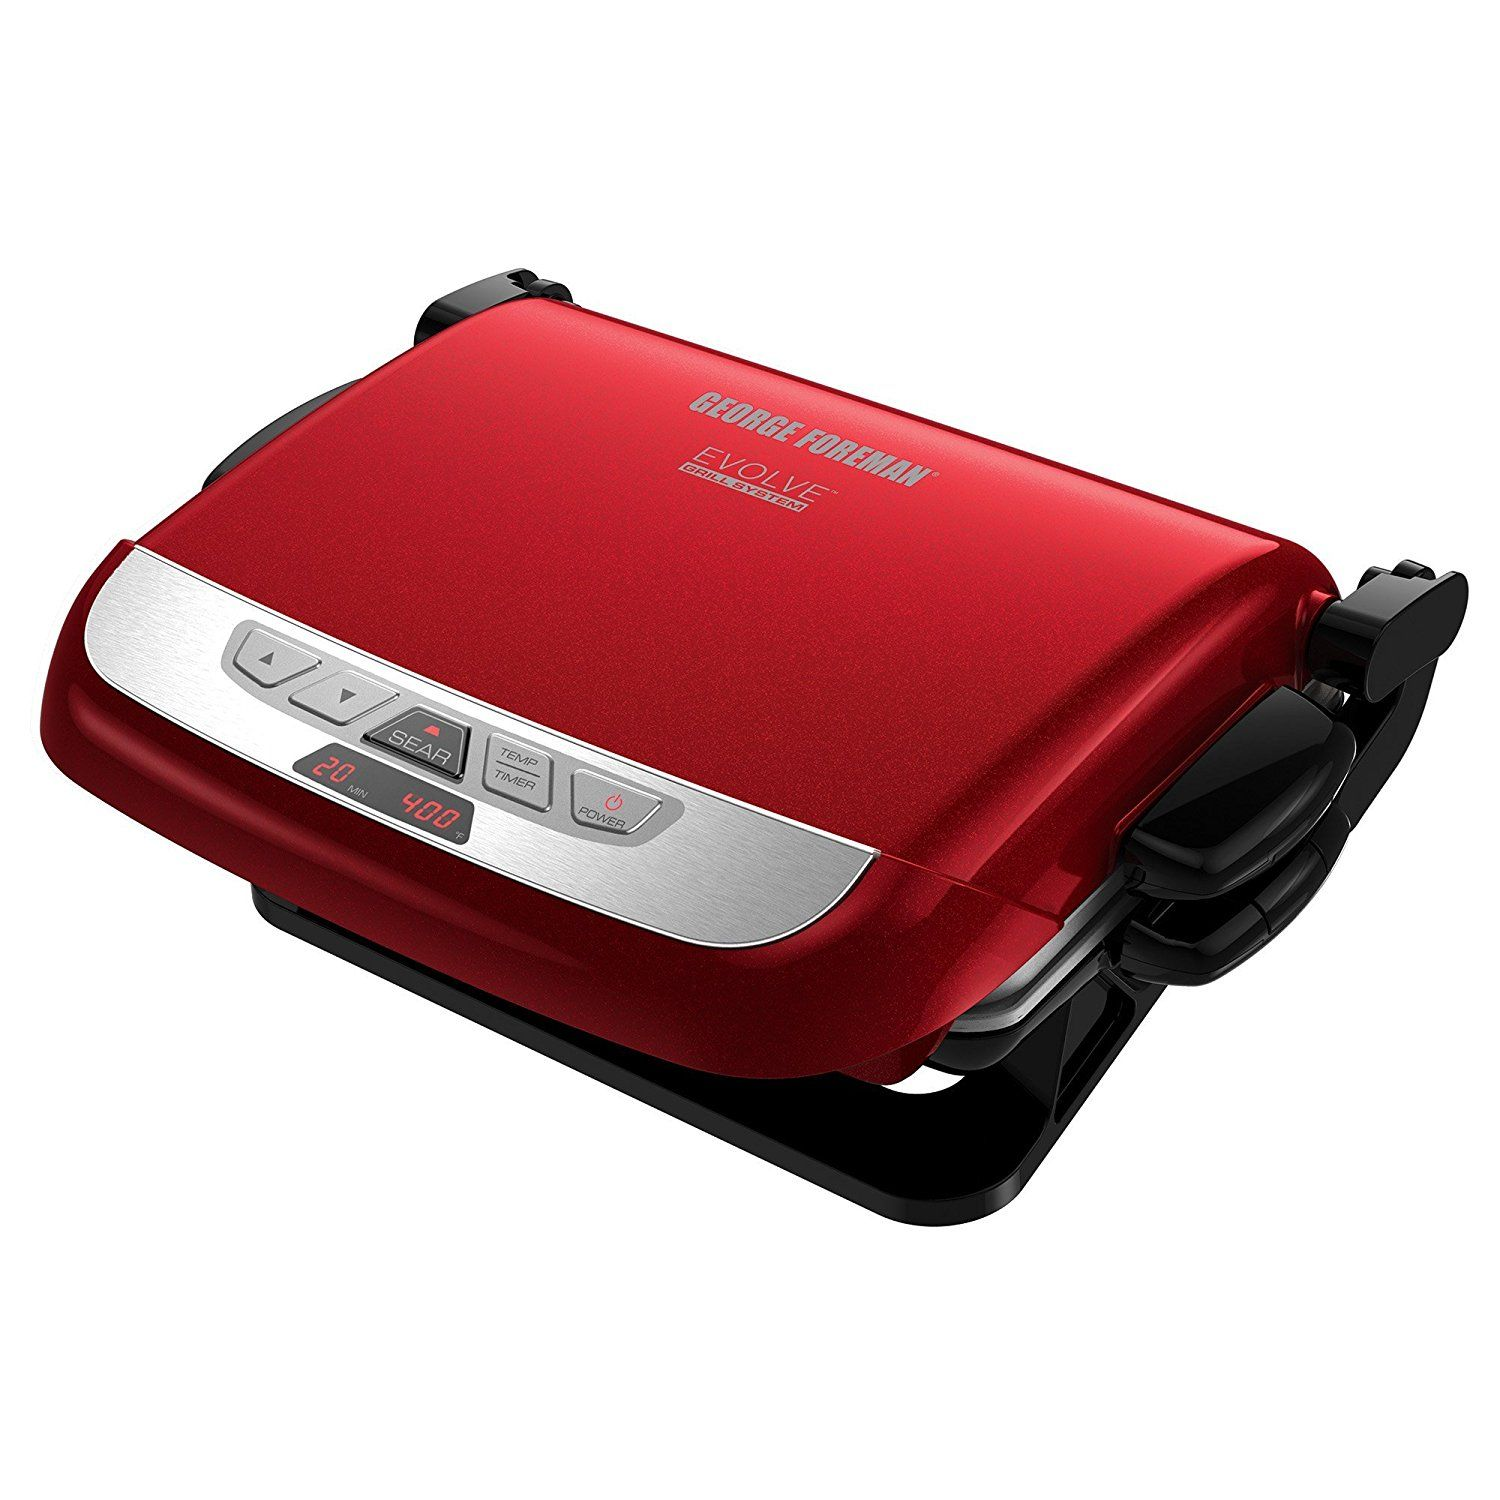 George Foreman Grp4800r 4 In 1 Multi Plate Evolve Grill Electric Grill Panini Press Grilling Baking And Cupcake George Foreman Grill Plate Ceramic Grill